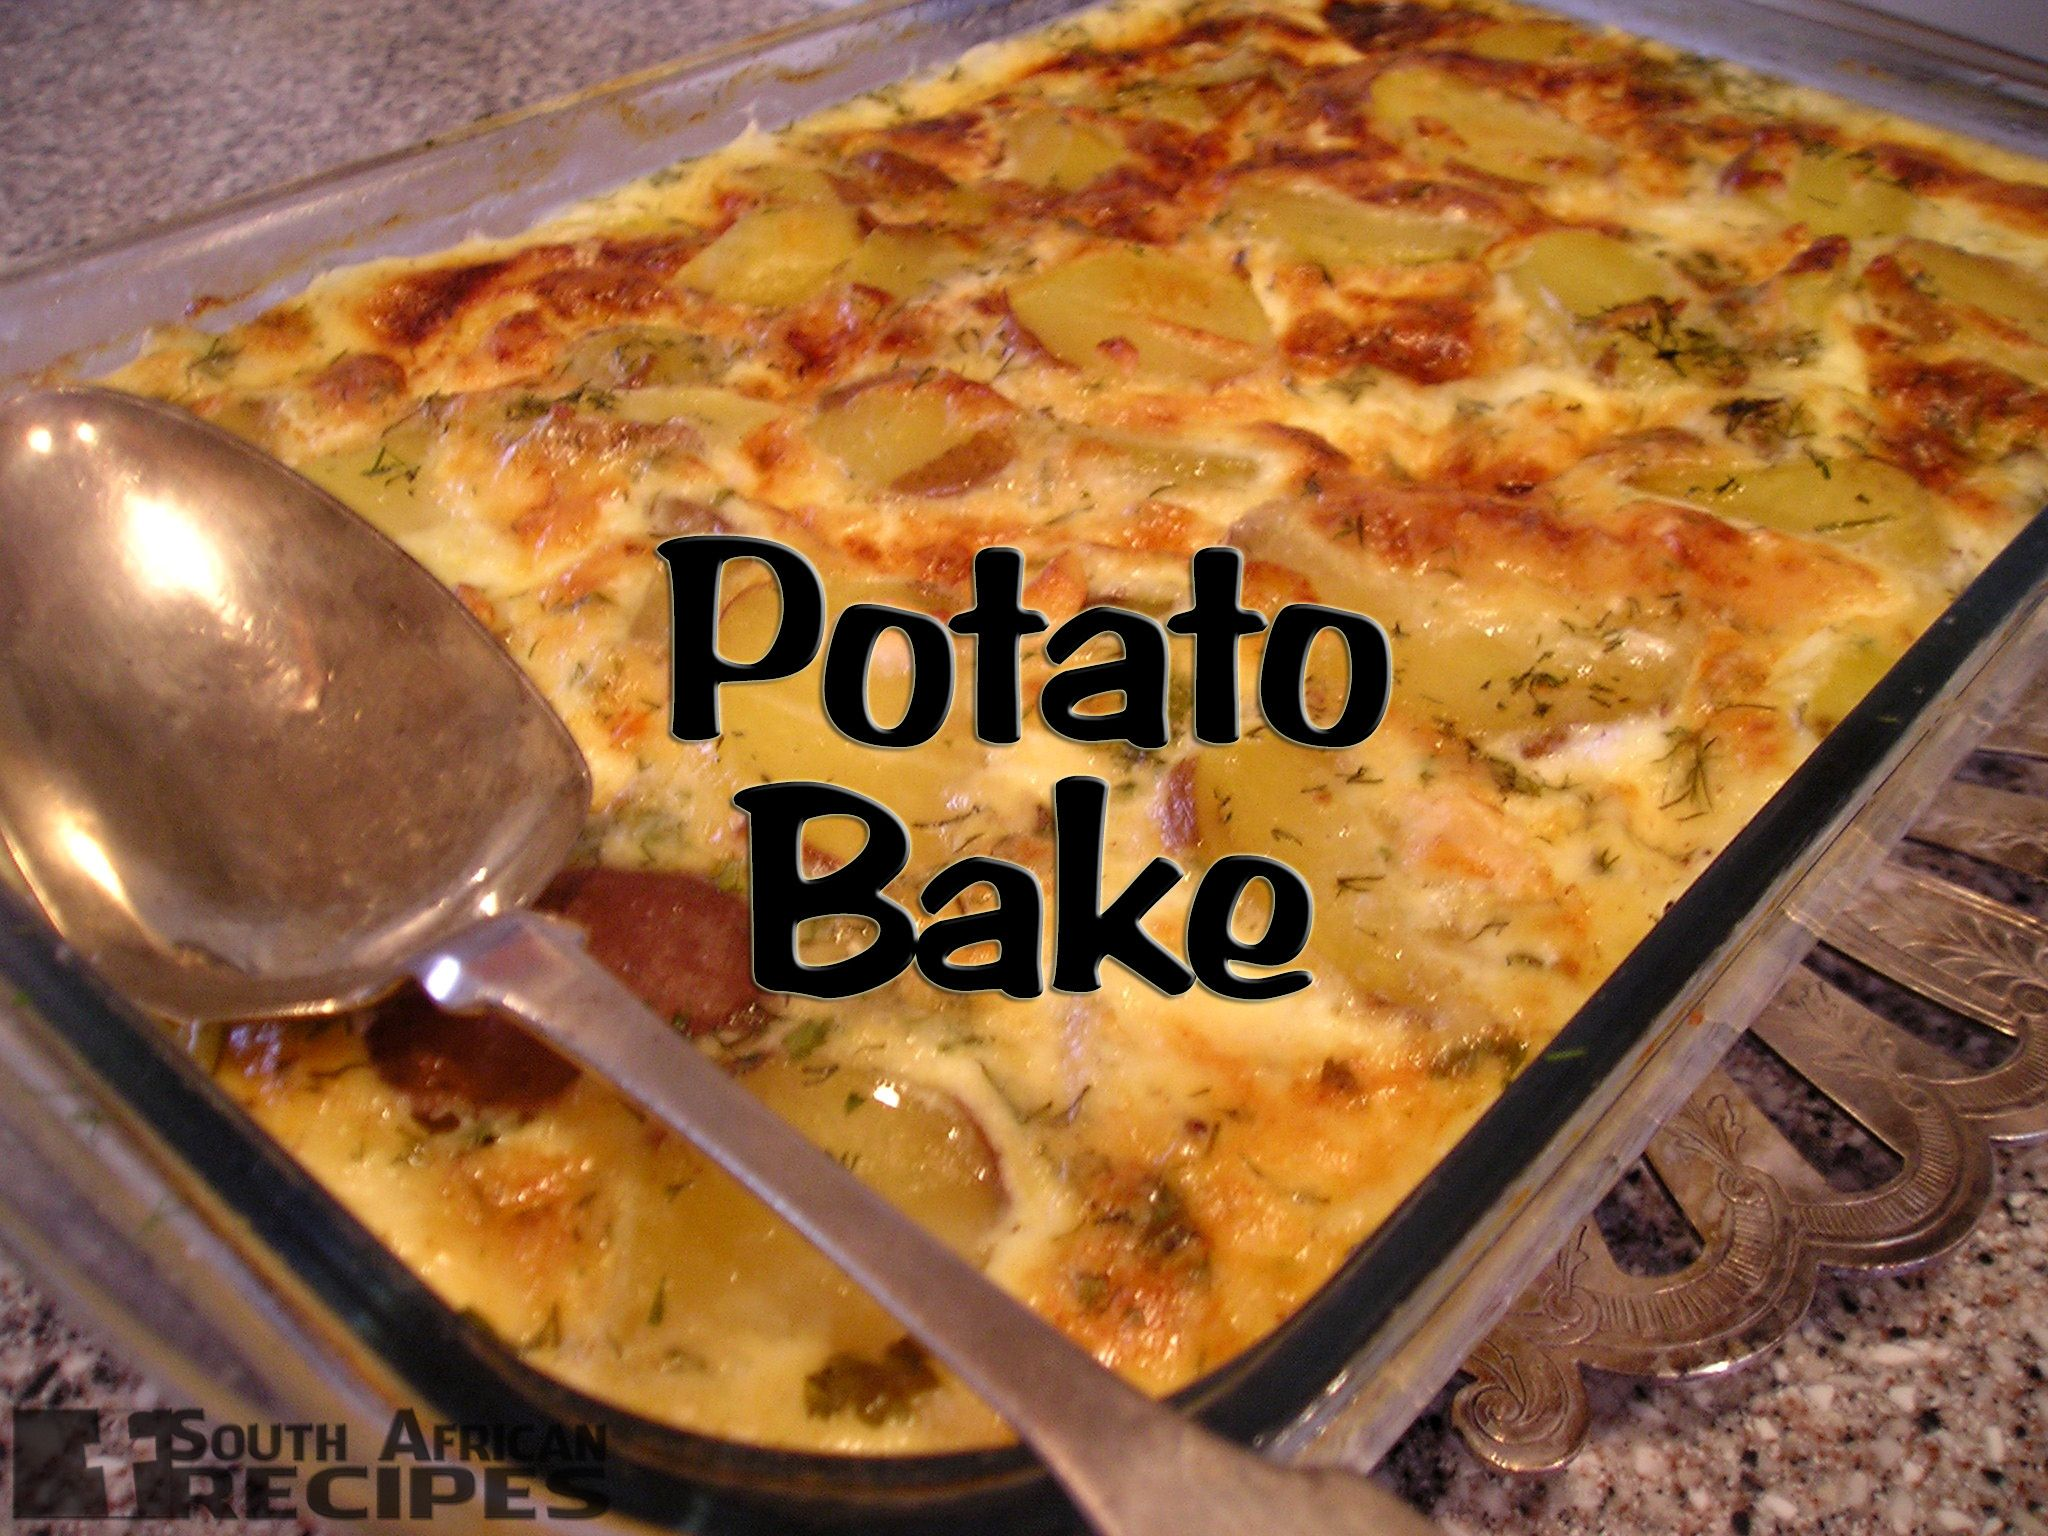 South african recipes easy potato bake 9 vegetables pinterest south african recipes easy potato bake forumfinder Image collections